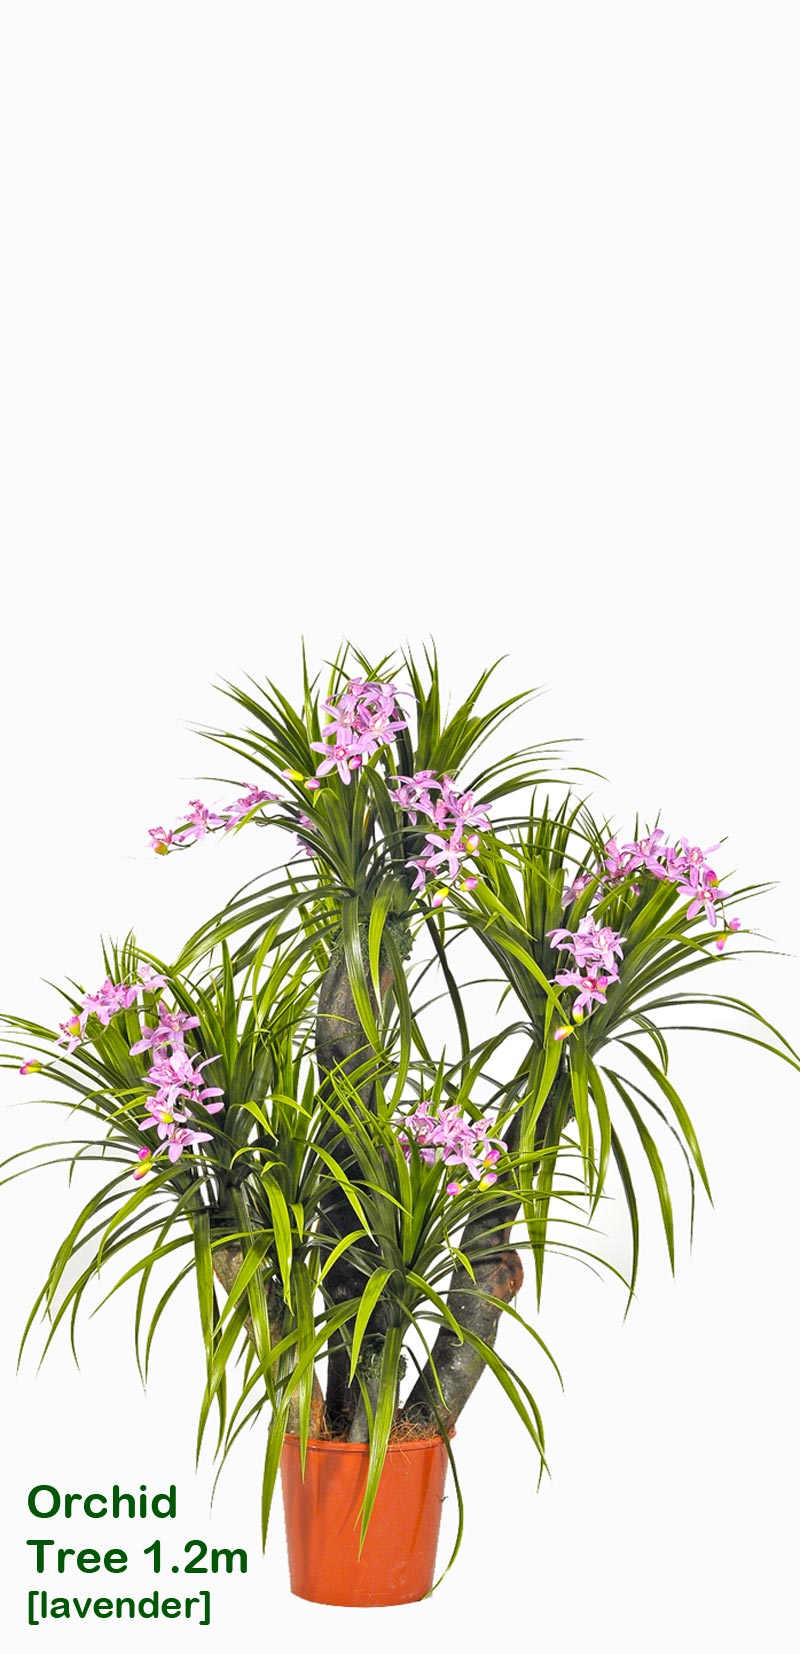 Articial Plants - Orchid Trees 1.5M